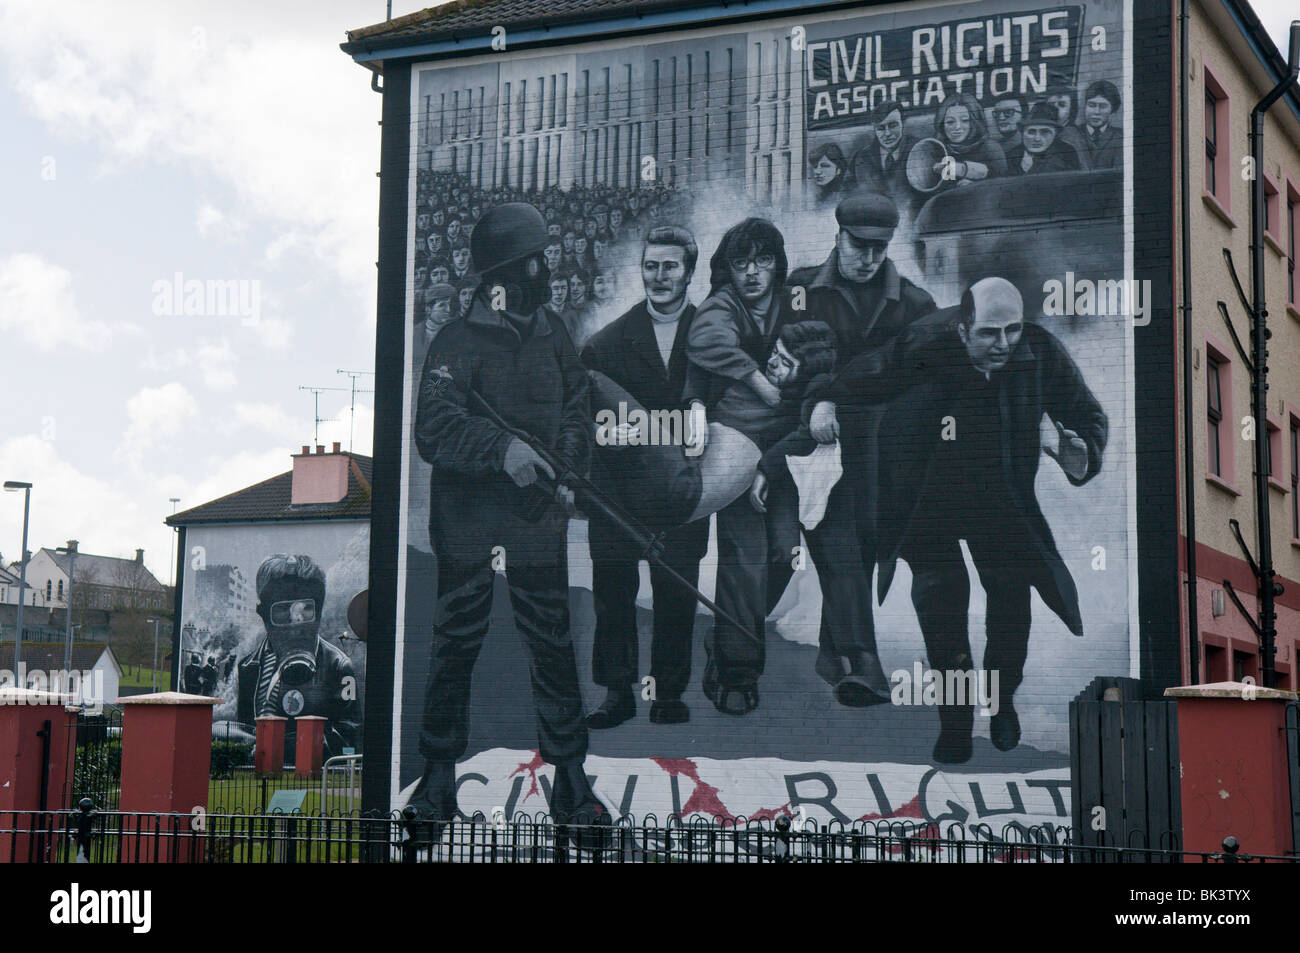 Mural from Bloody Sunday, showing Fr Edward Daly waving white handkerchief, men behind carrying a shot victim - Stock Image